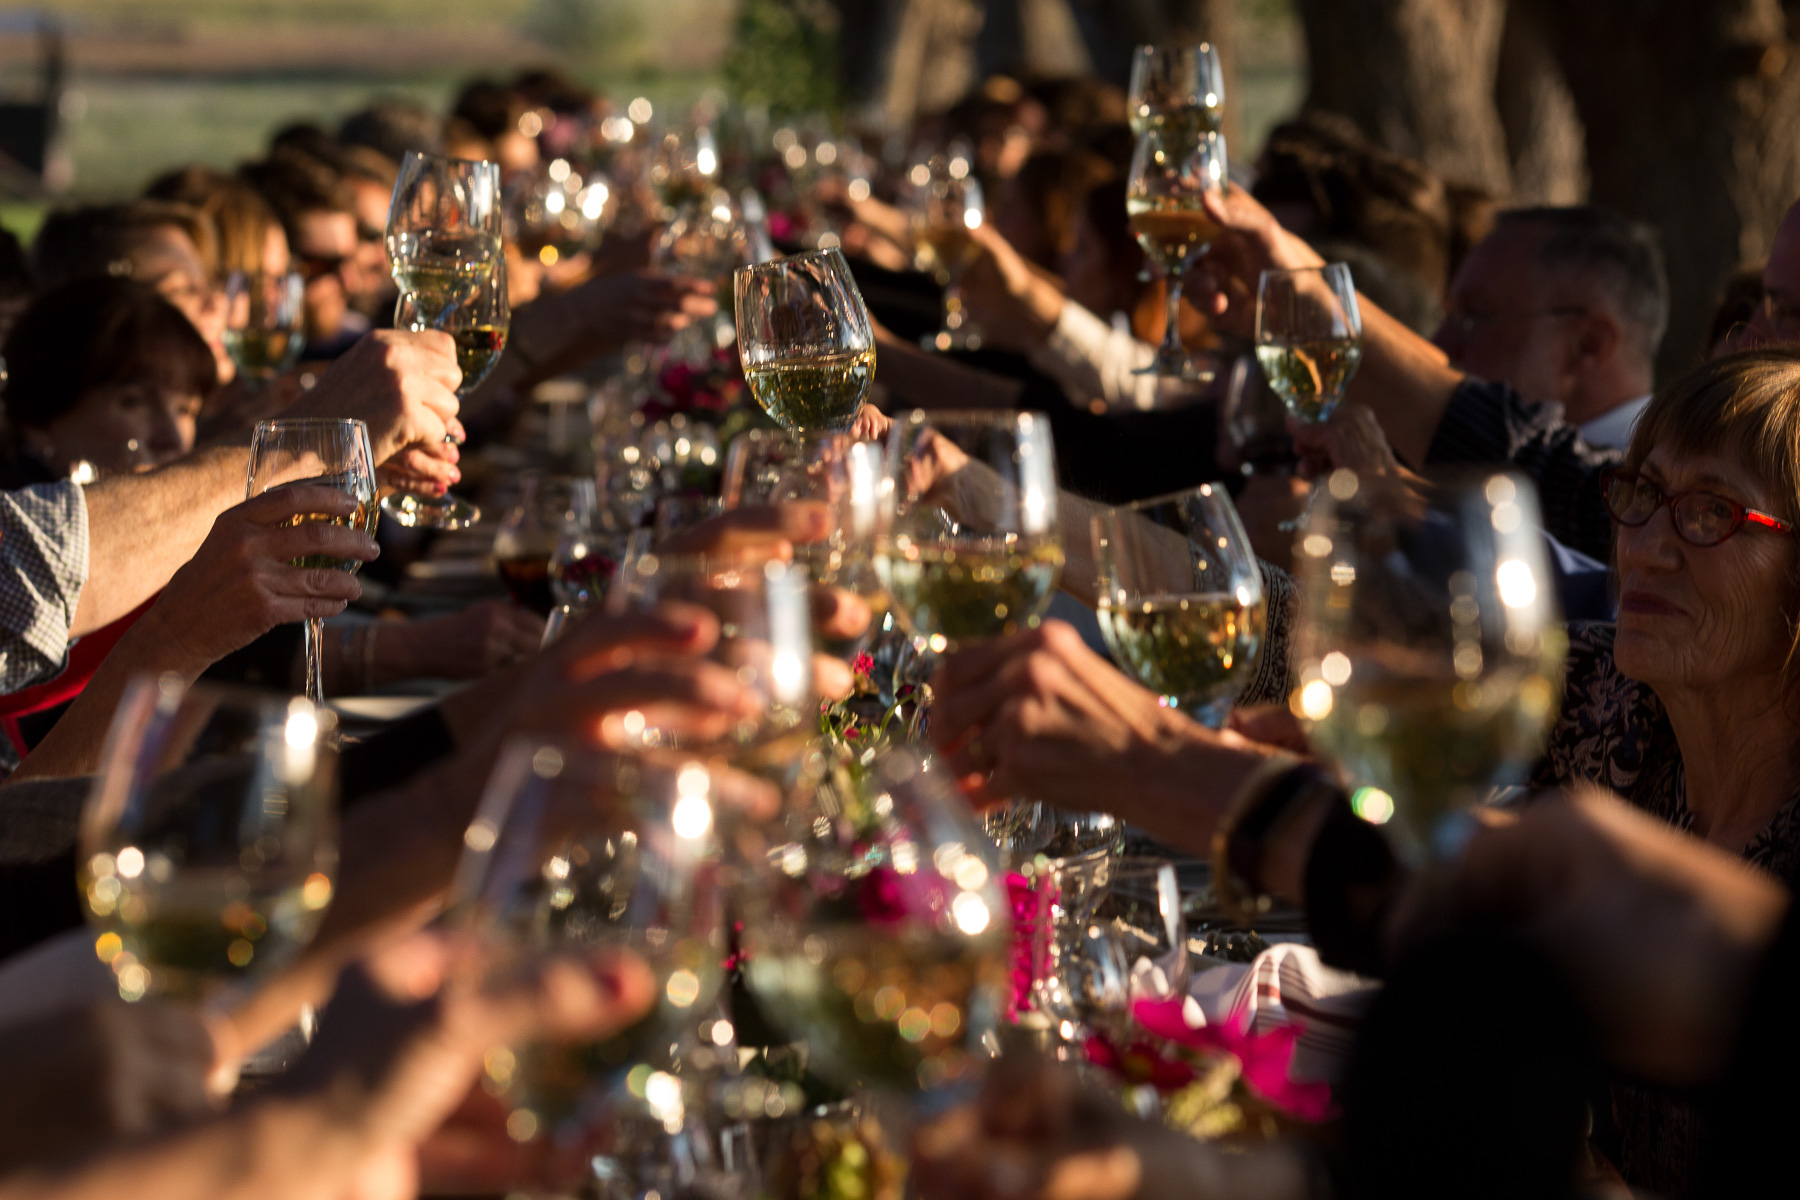 wine glasses toasting at an outdoor farm wedding sitting at a long table